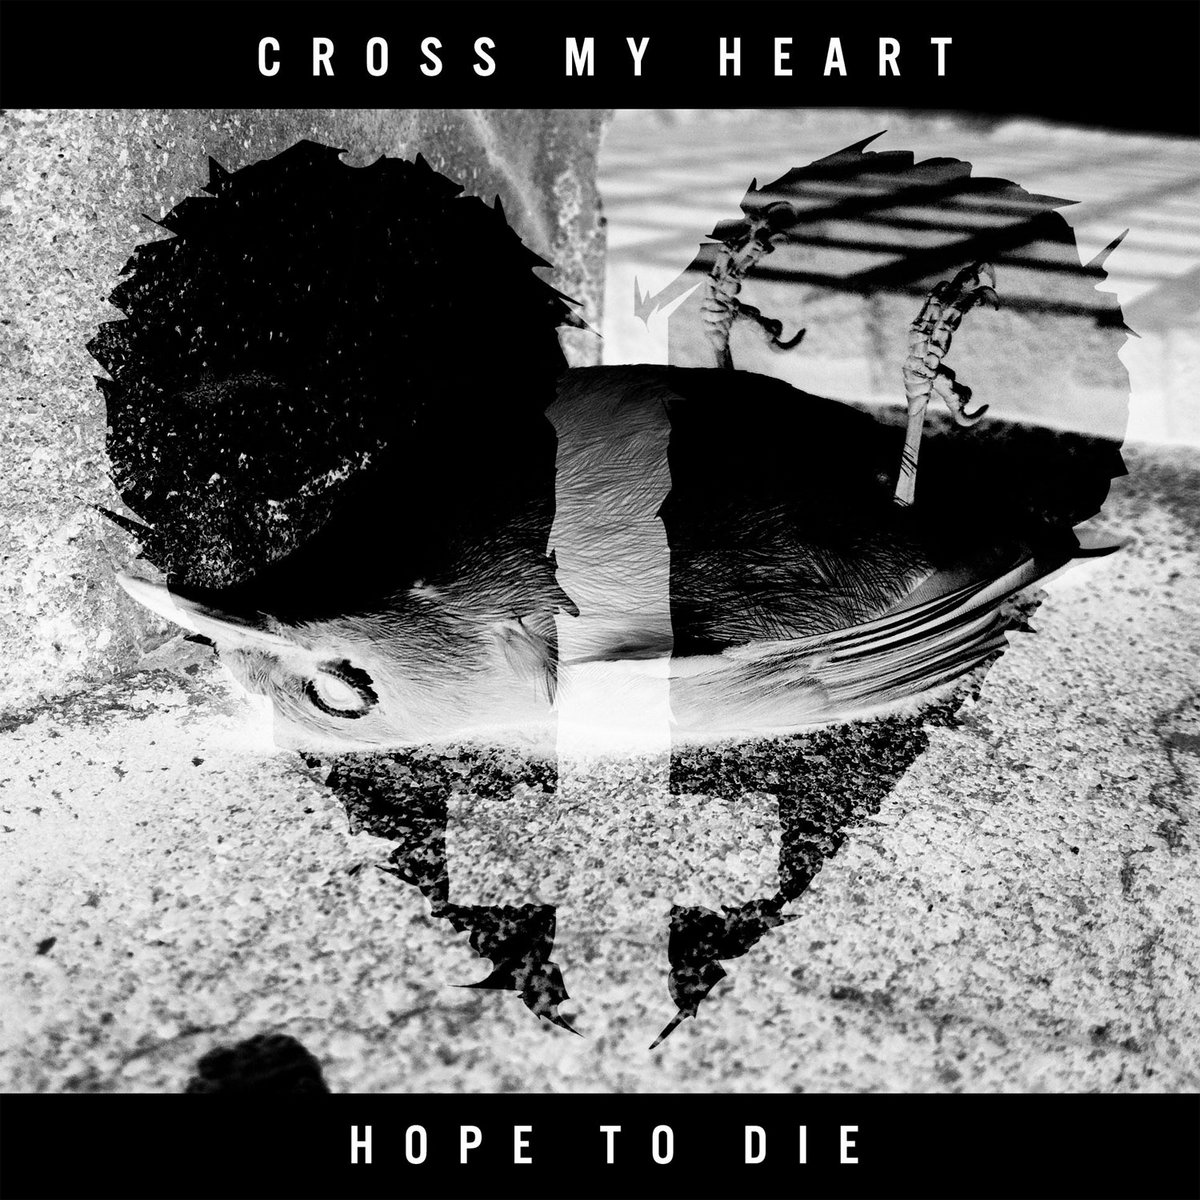 cross your heart hope to die Cross your heart: la lala lala la lala lala la lala lala la cross your heart, say: i love you cross your heart and hope to die: for a very simple reason.